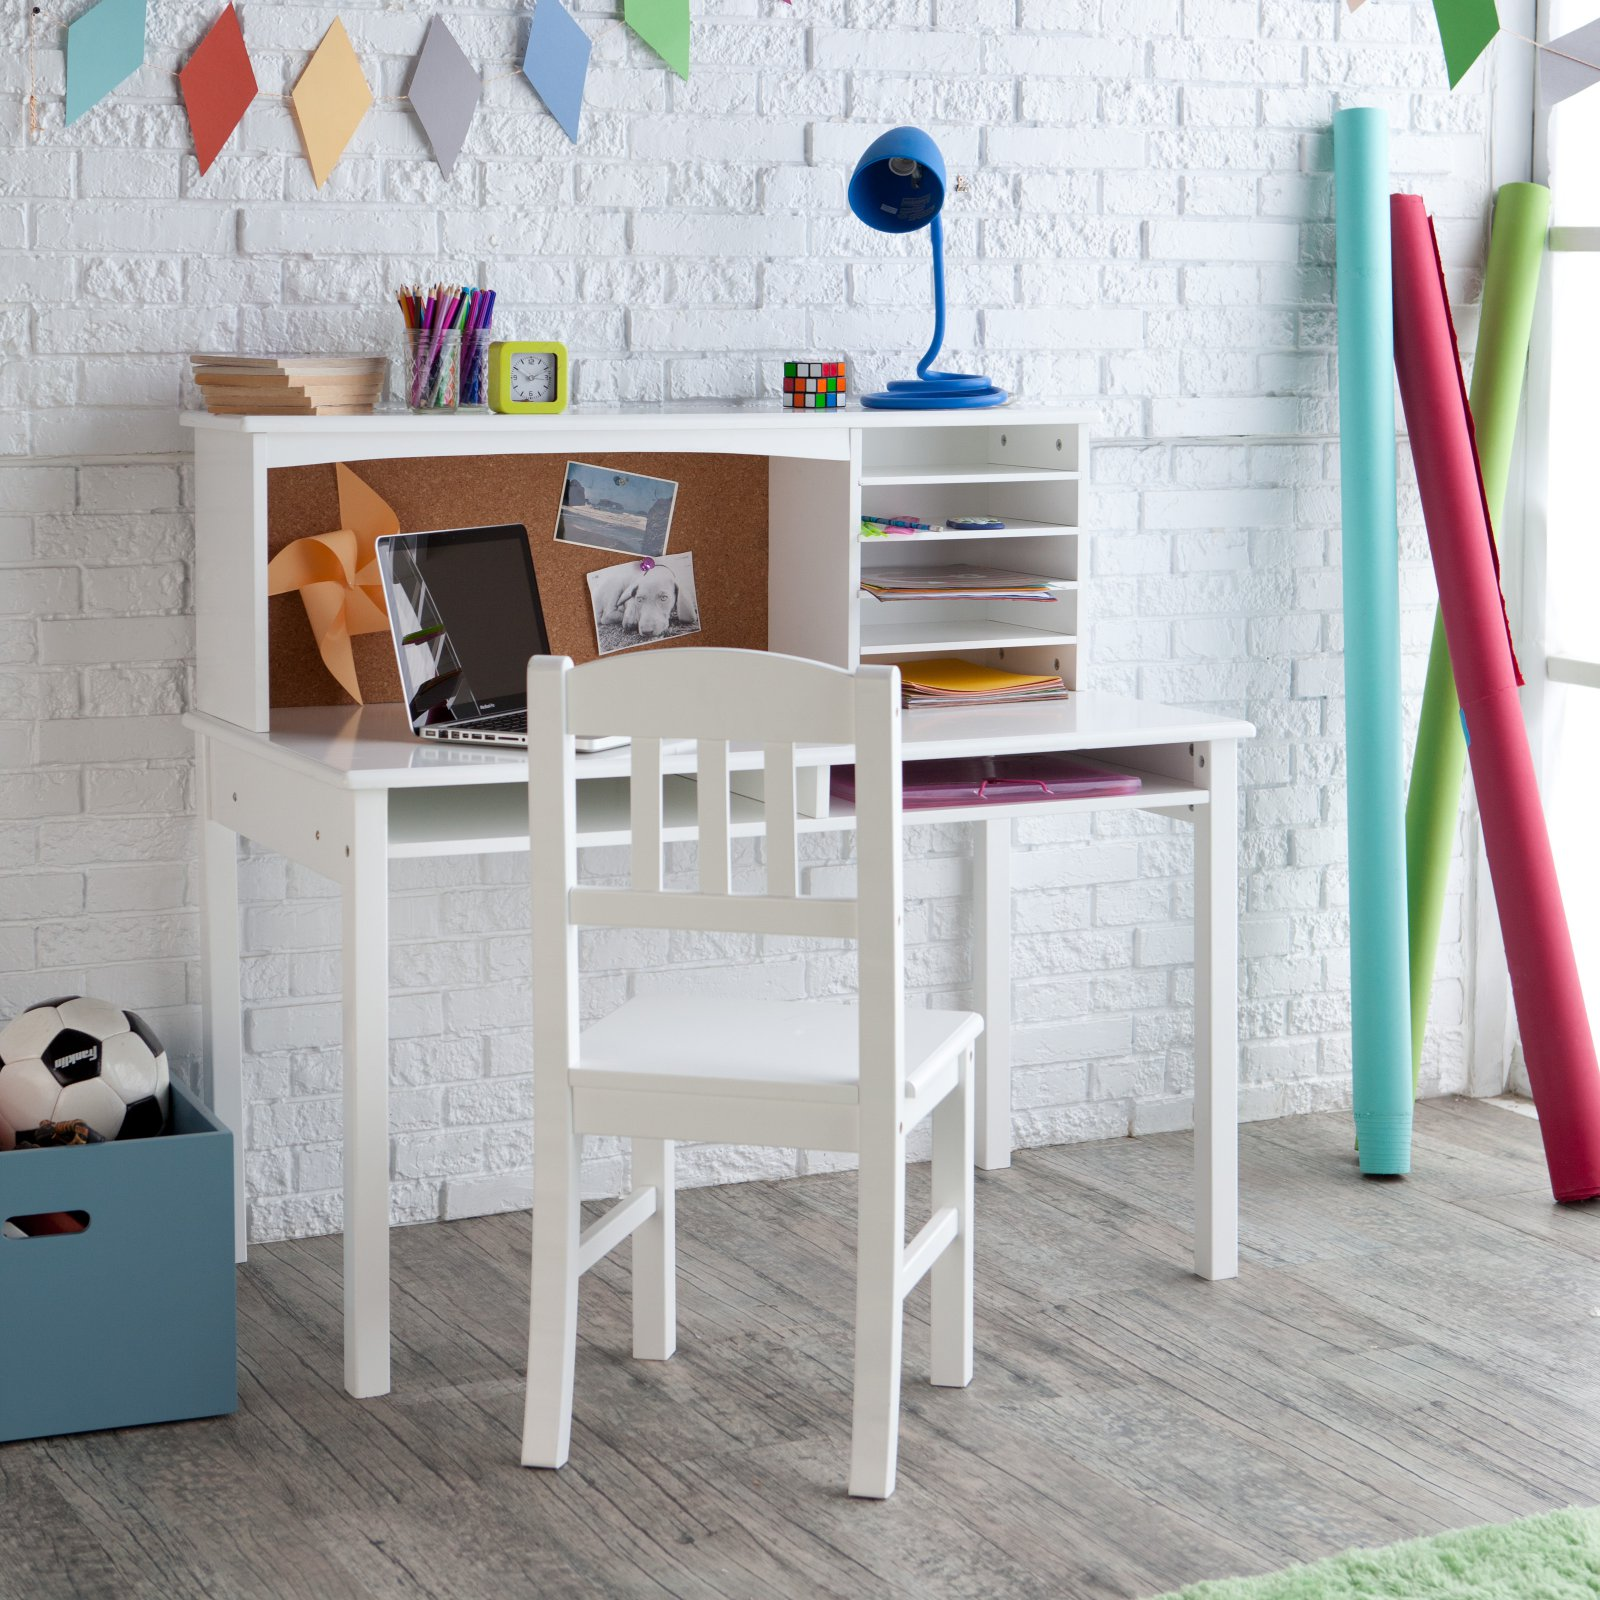 Guidecraft Media Desk & Chair Set - White